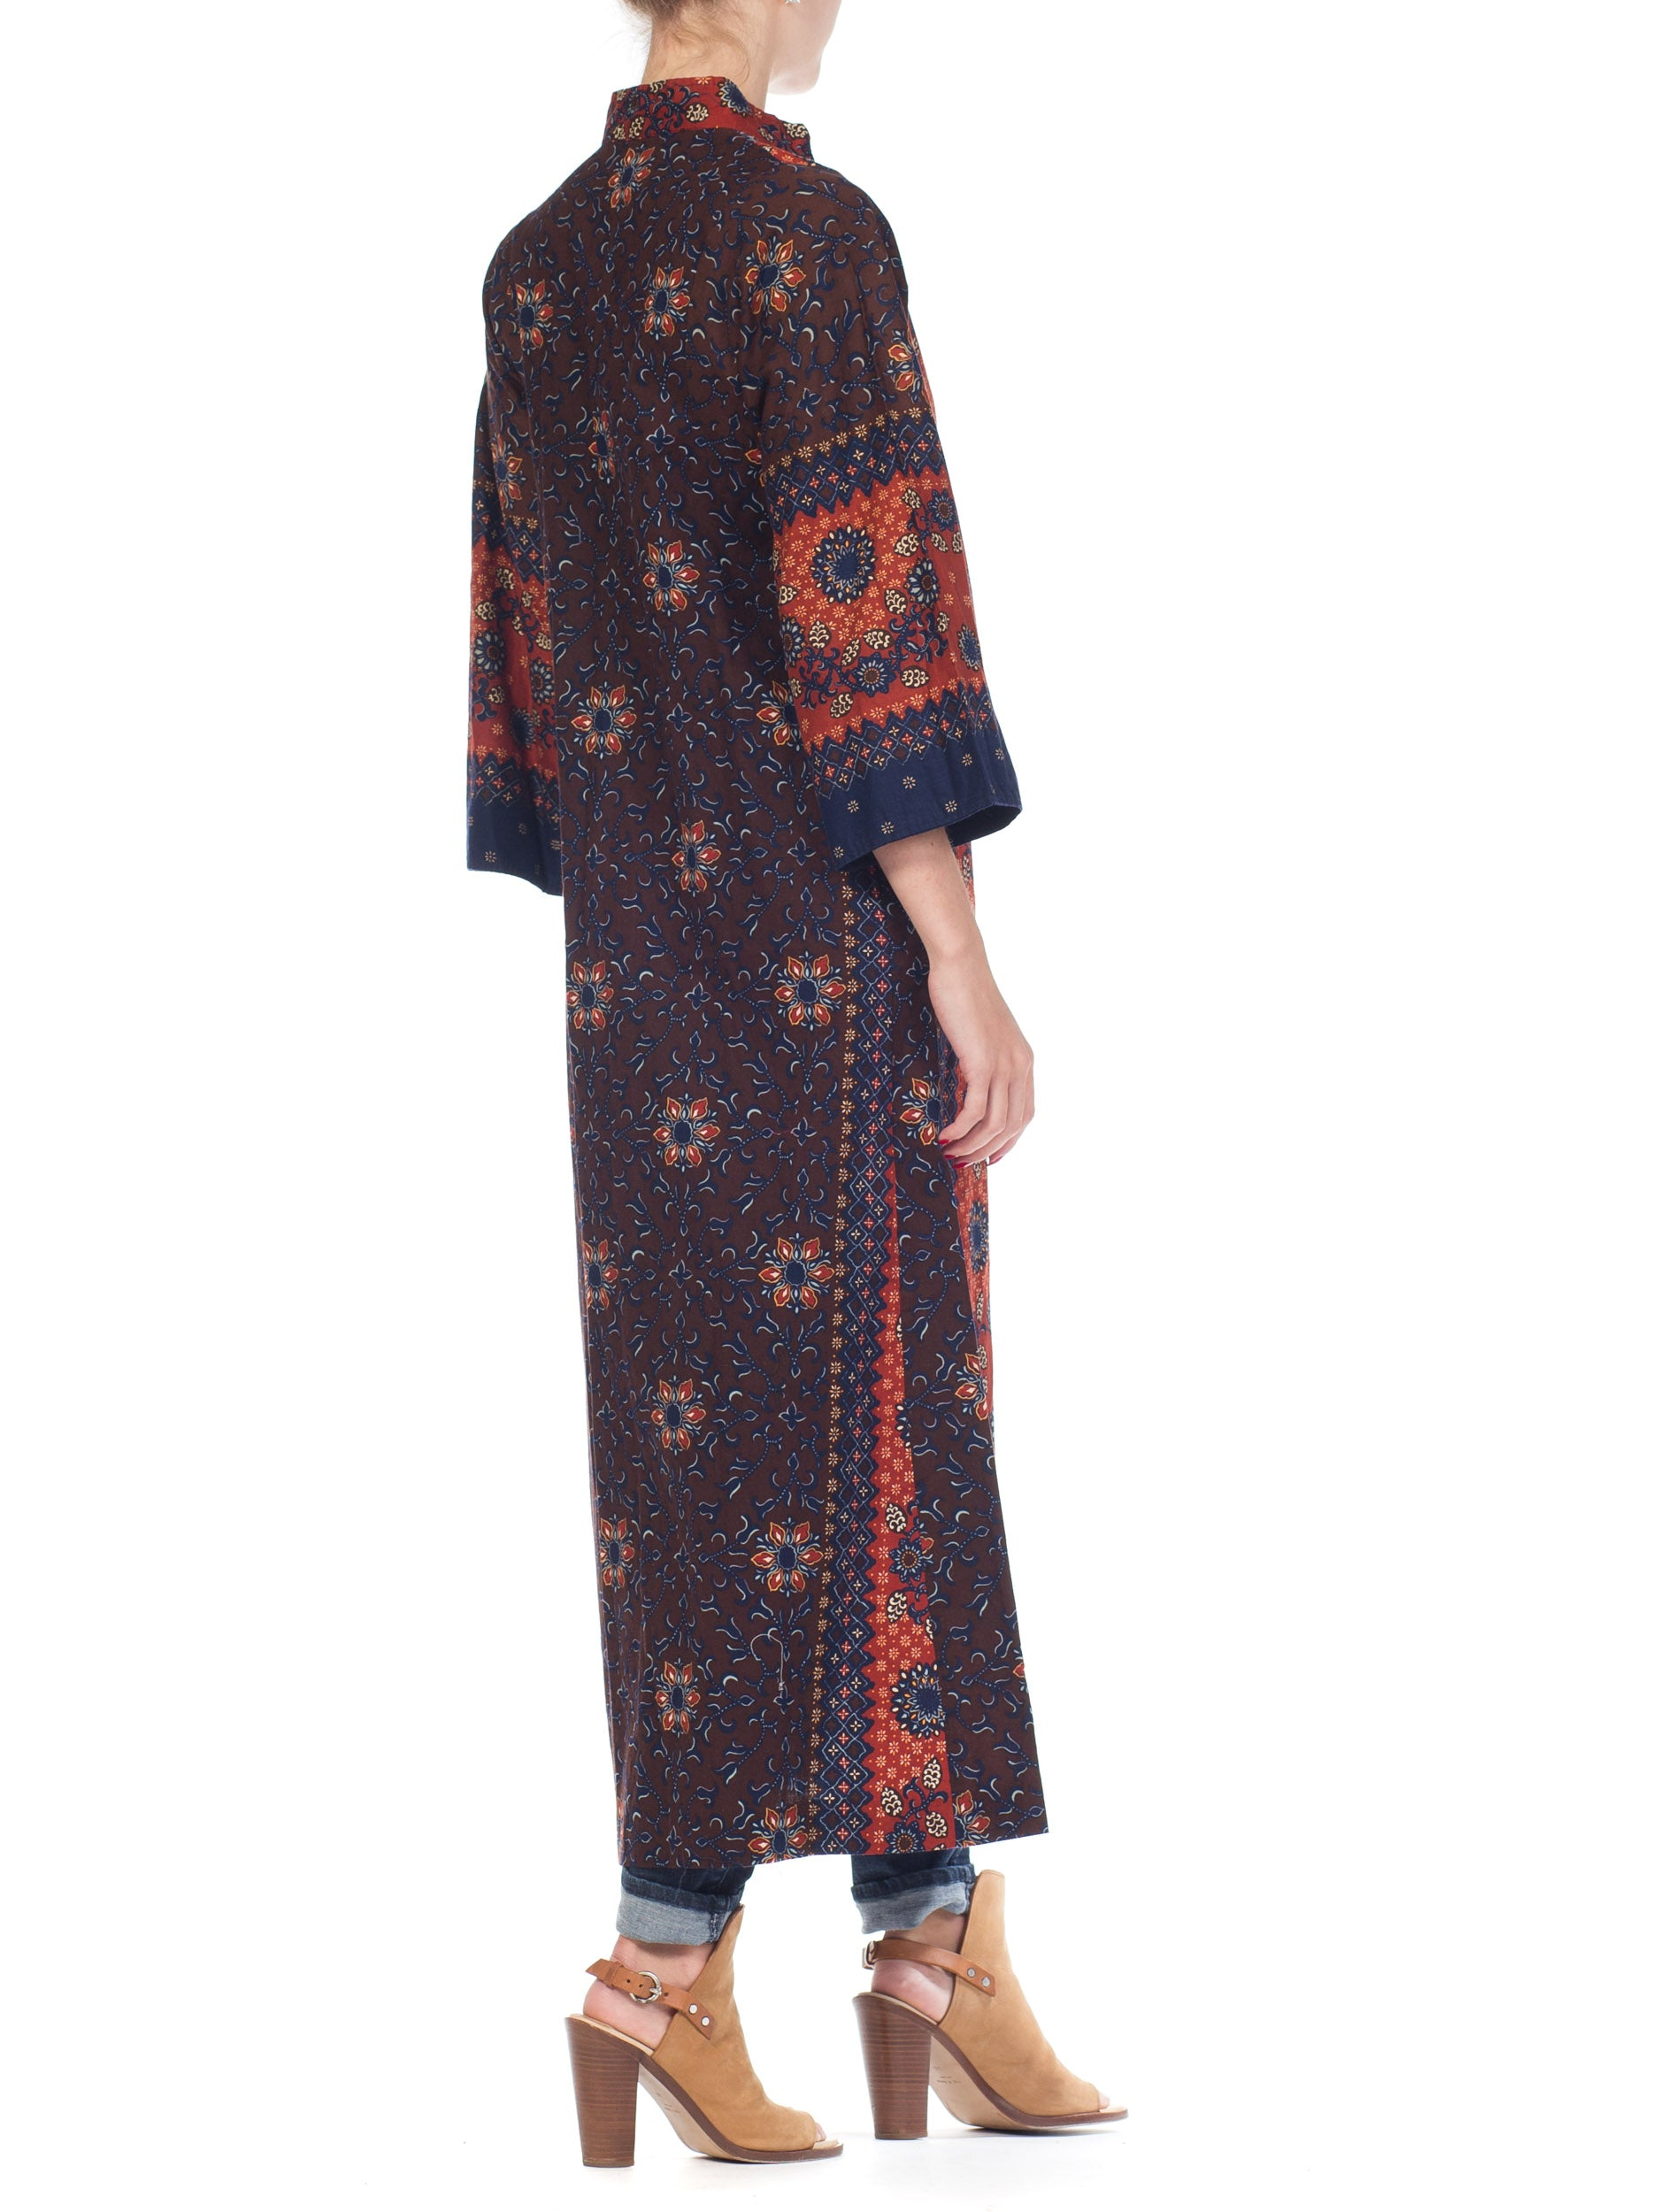 1970S I MAGNIN Brown & Blue Cotton South East Asian Batik Print Duster Kaftan